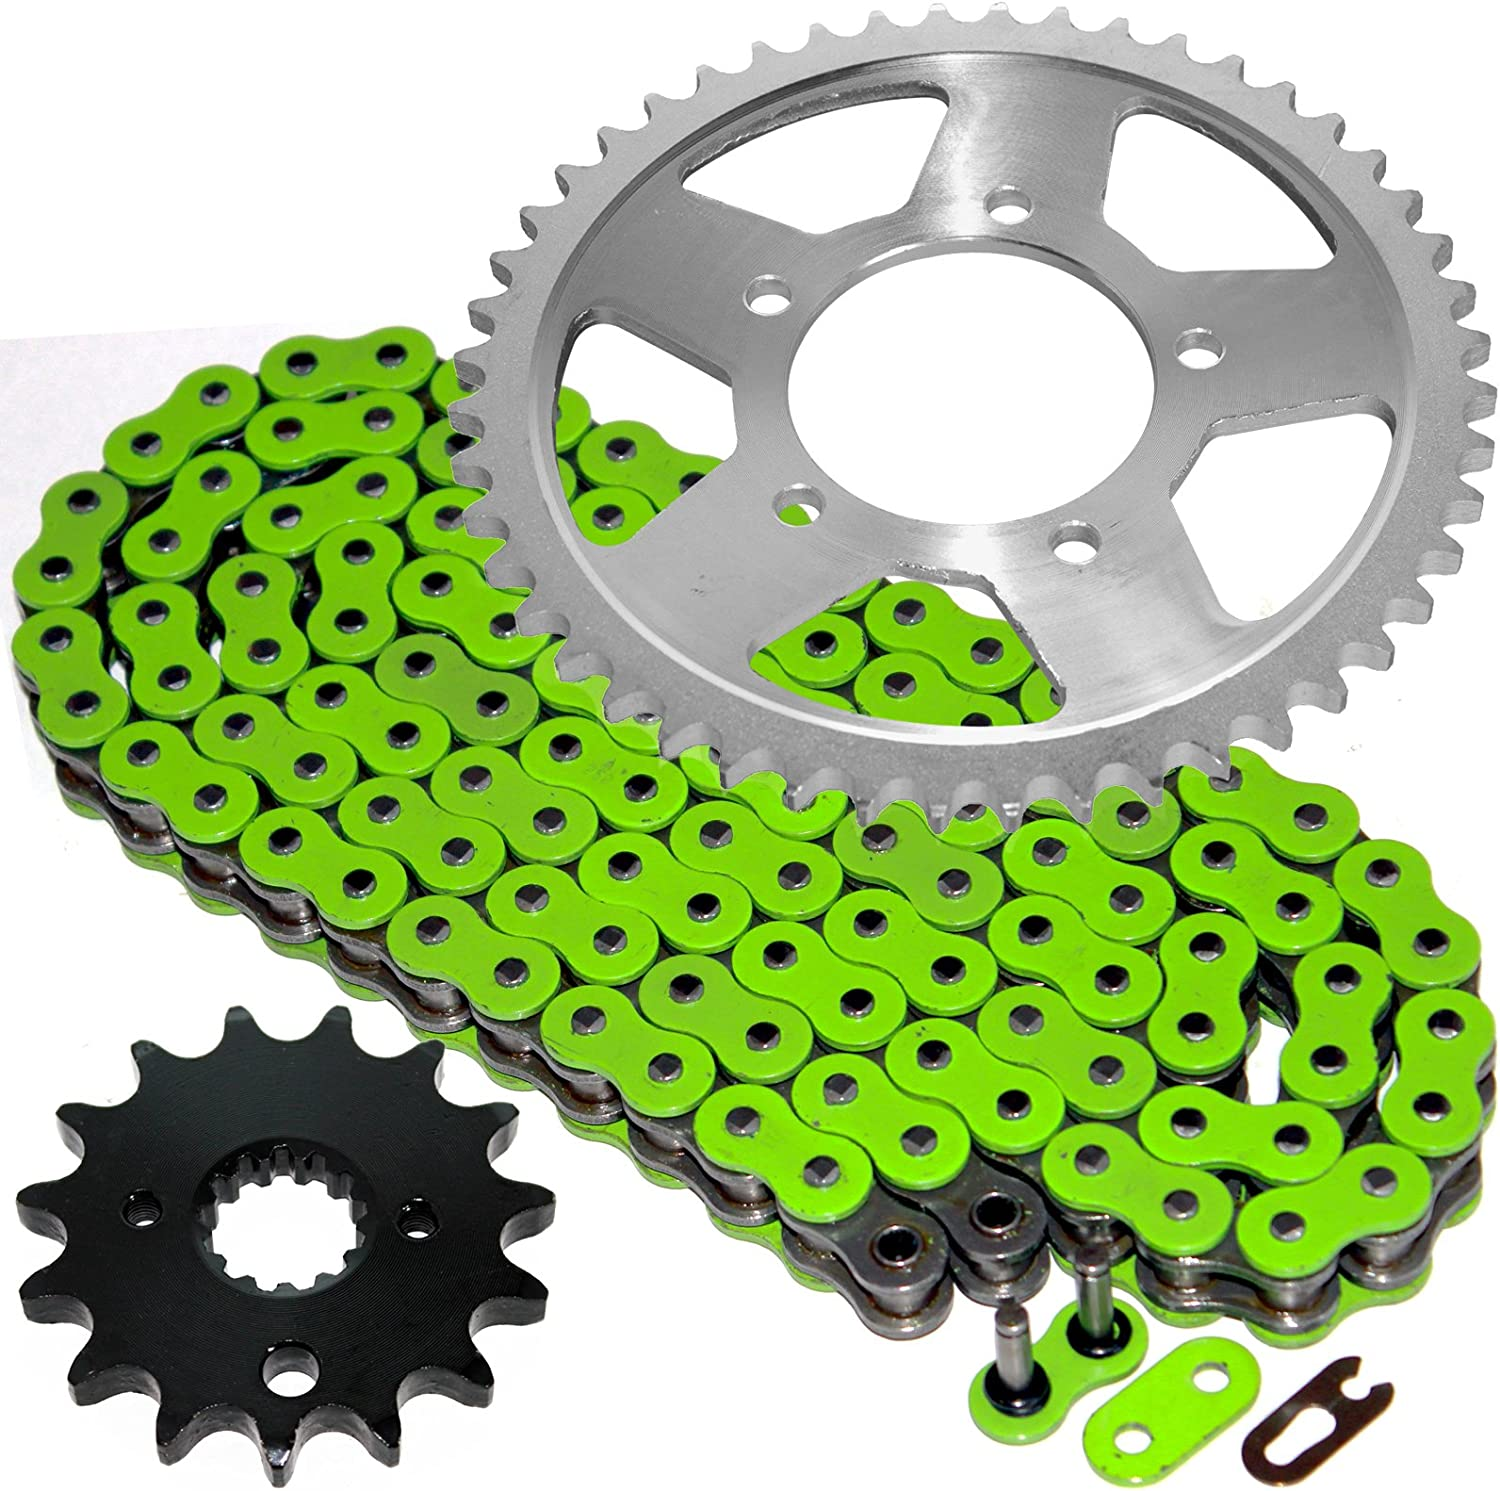 Caltric Green O-Ring Drive Chain /& Sprockets Kit for Suzuki Gsf600S Gsf-600S Bandit 600 1996-1999